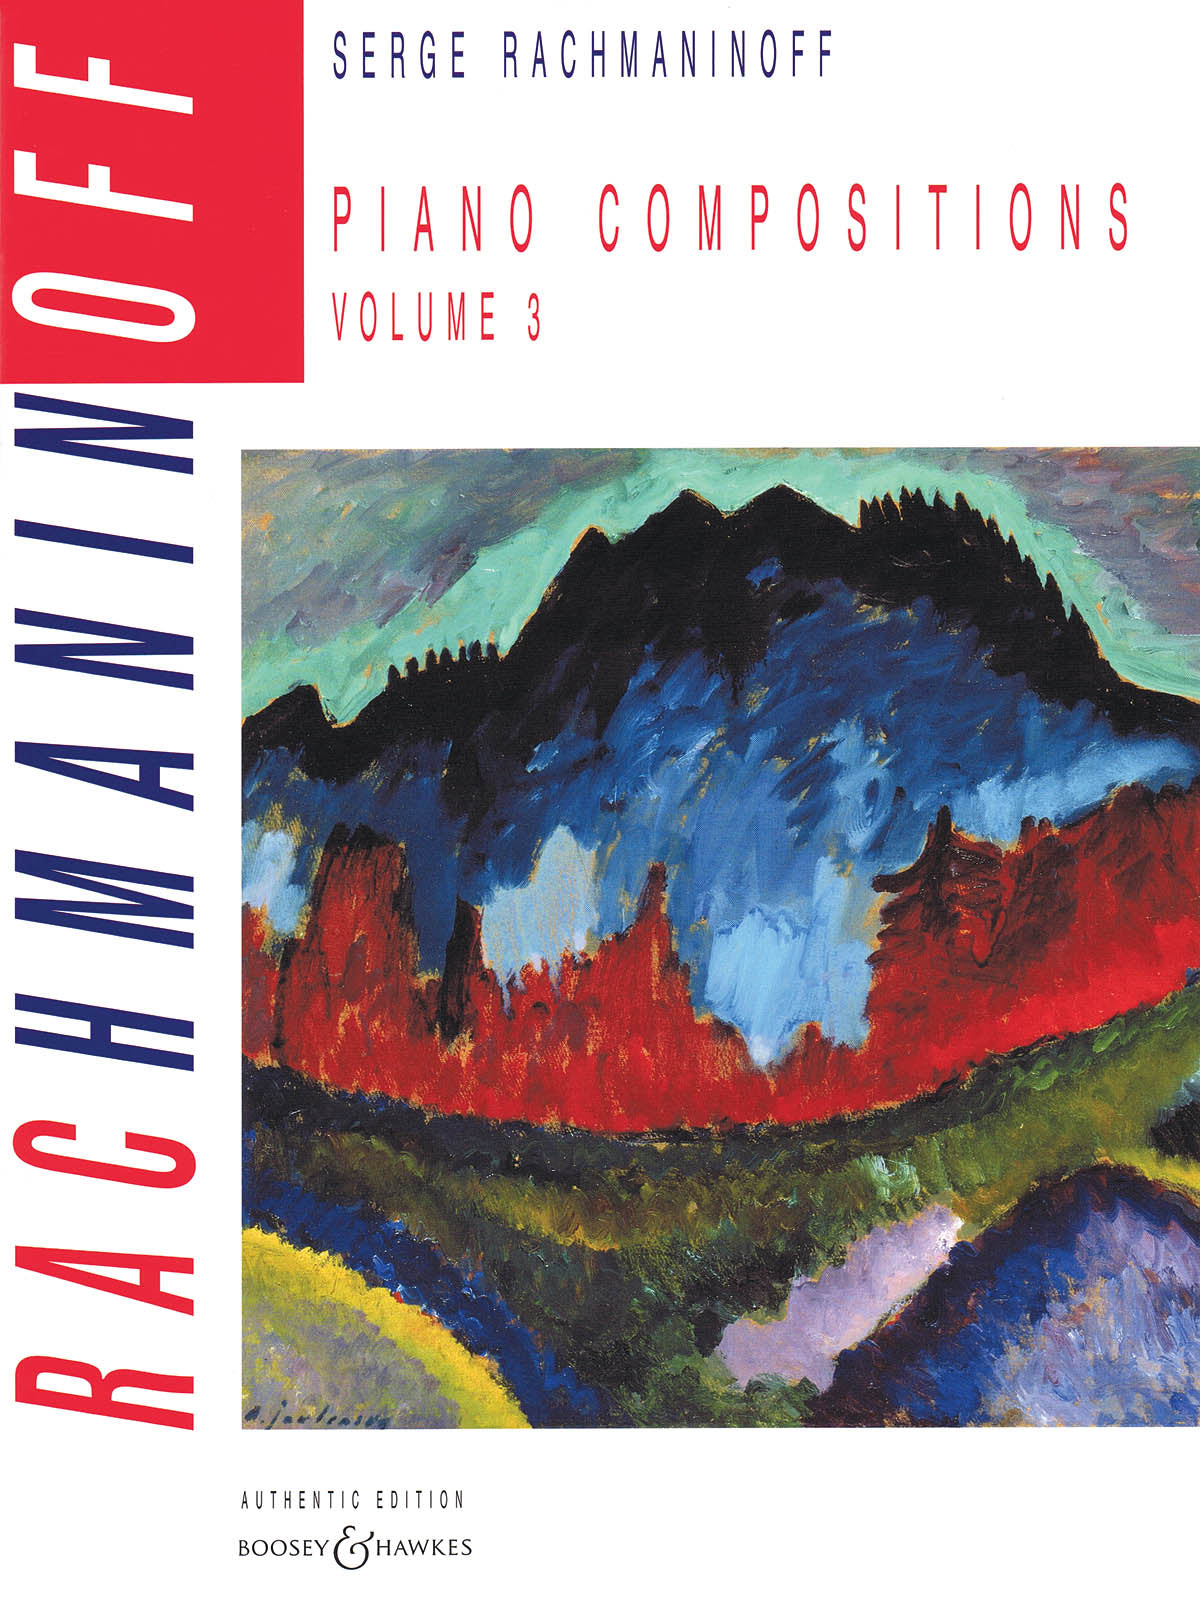 Rachmaninoff: Piano Compositions - Volume 3